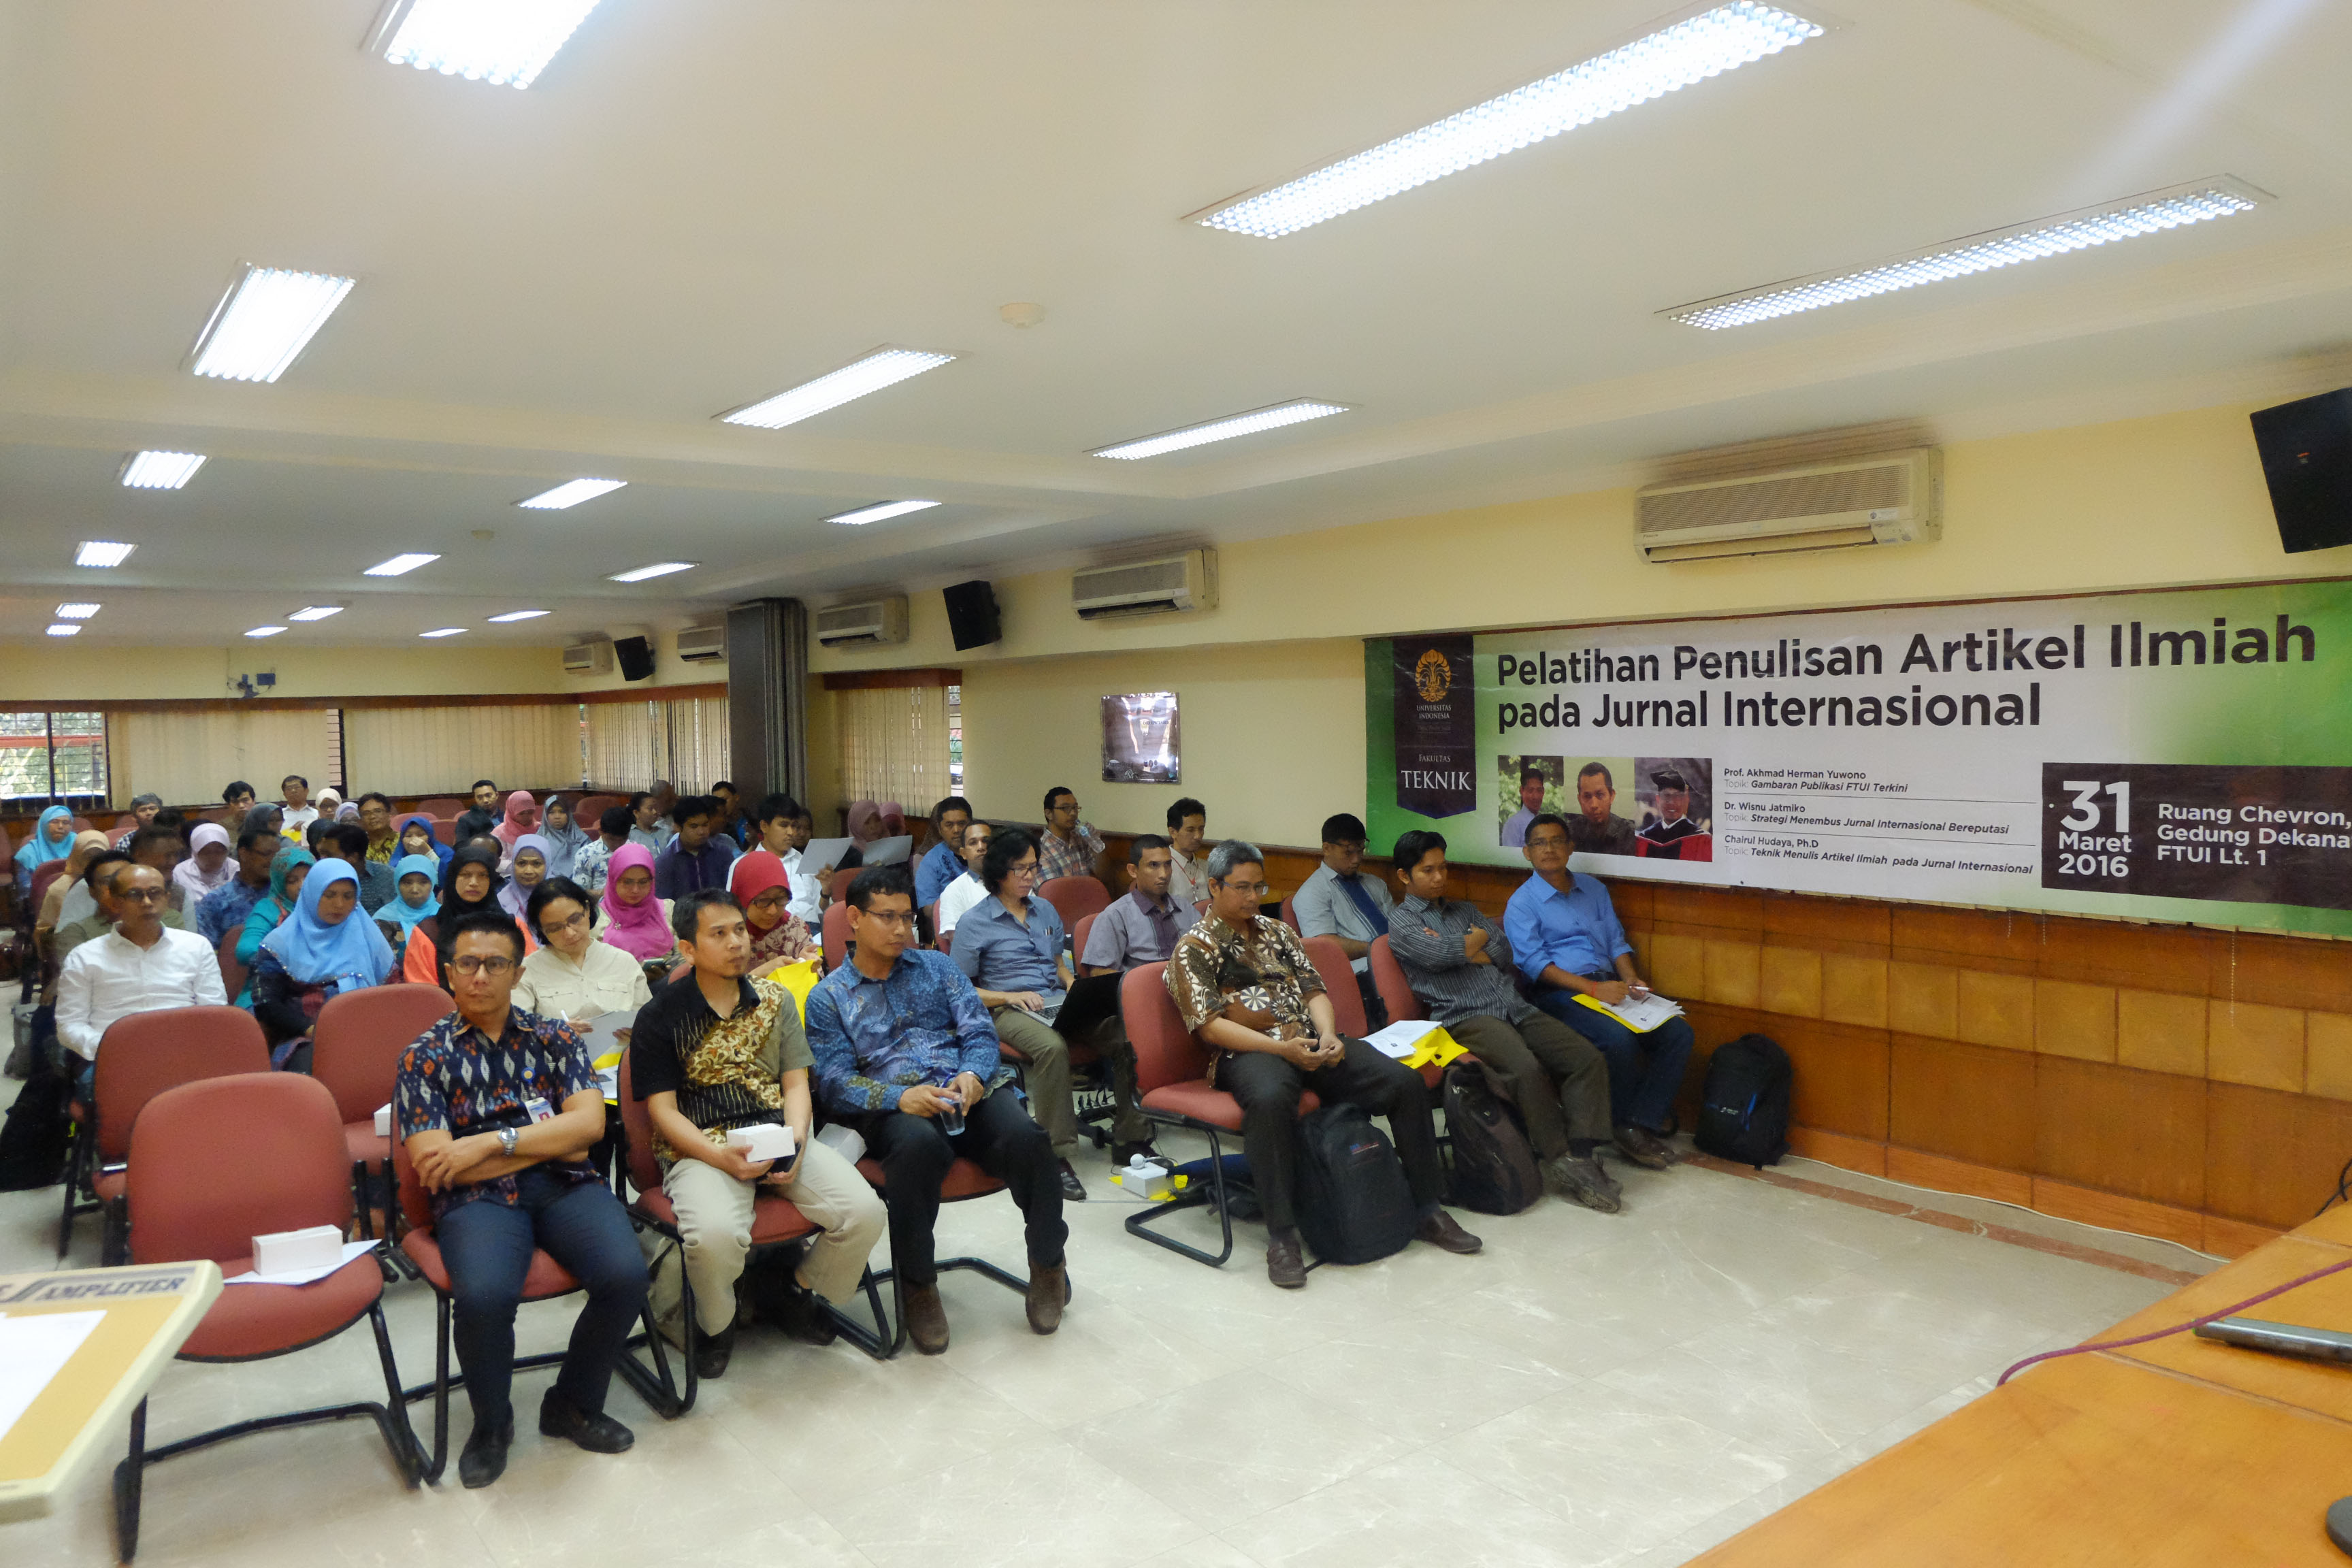 Workshop Pelatihan Penulisan Artikel Ilmiah Pada Jurnal Internasional Fakultas Teknik Universitas Indonesia